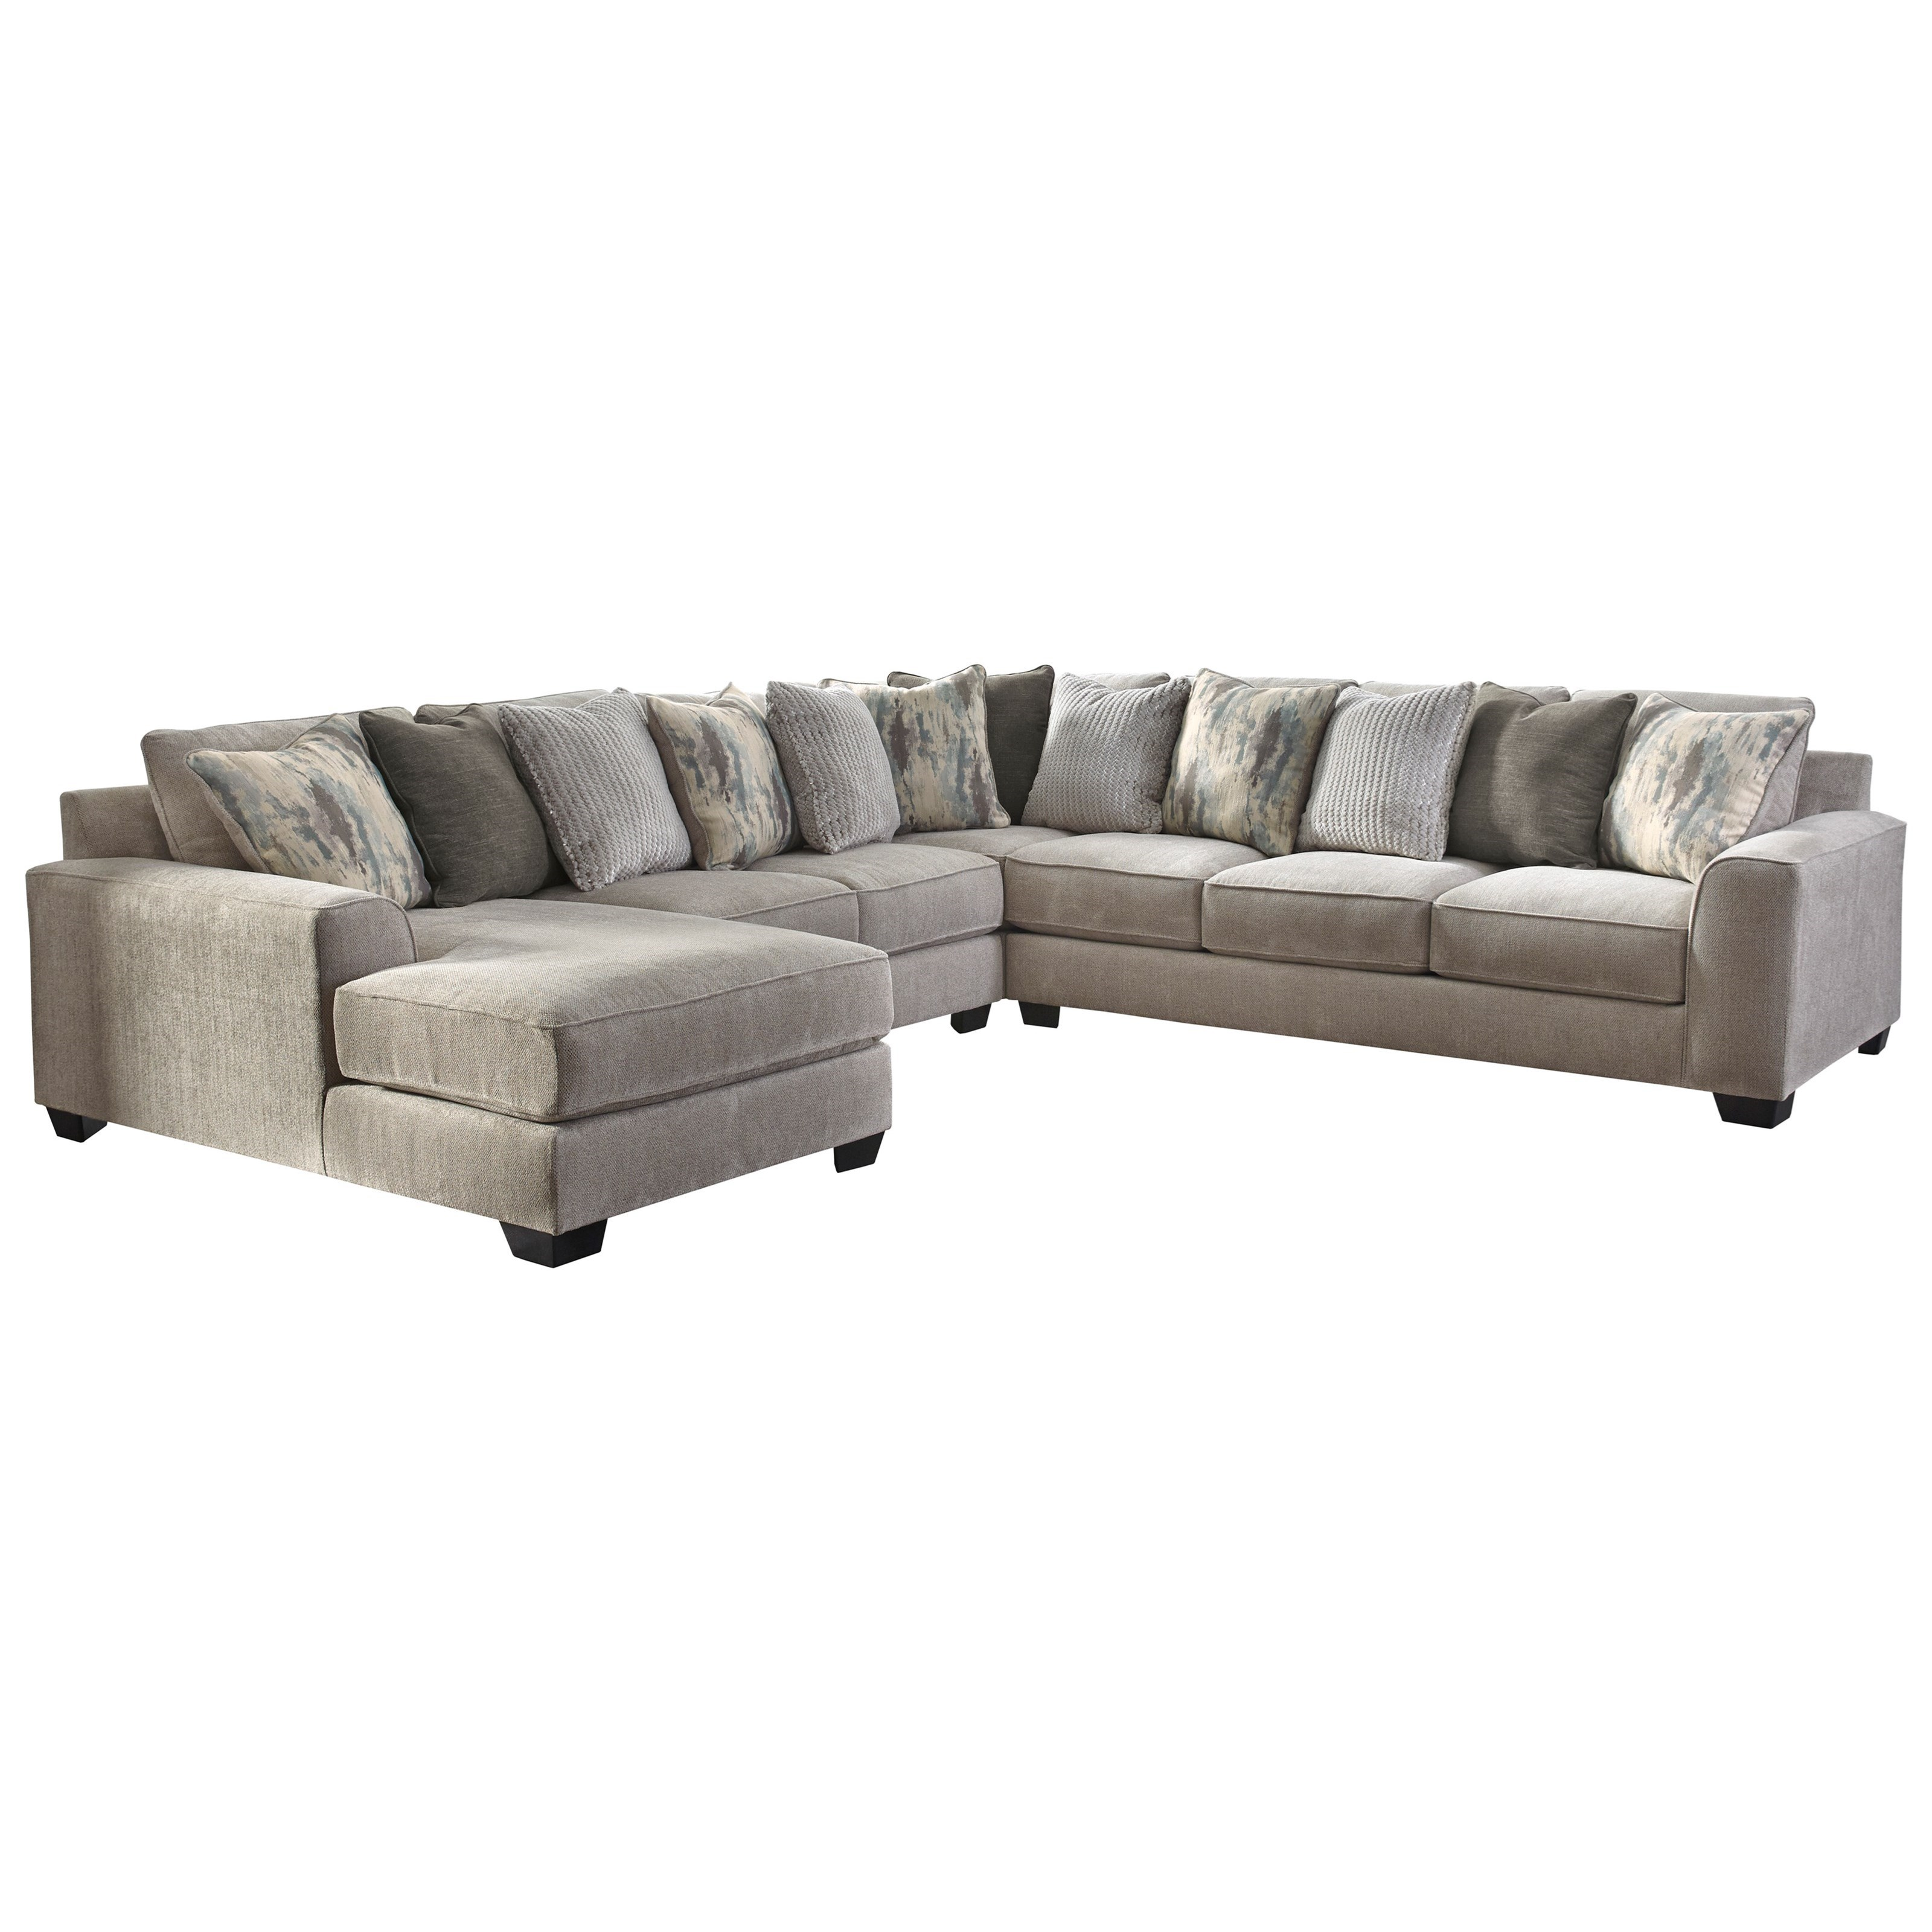 Ardsley 4-Piece Sectional with Left Chaise by Benchcraft at Walker's Furniture